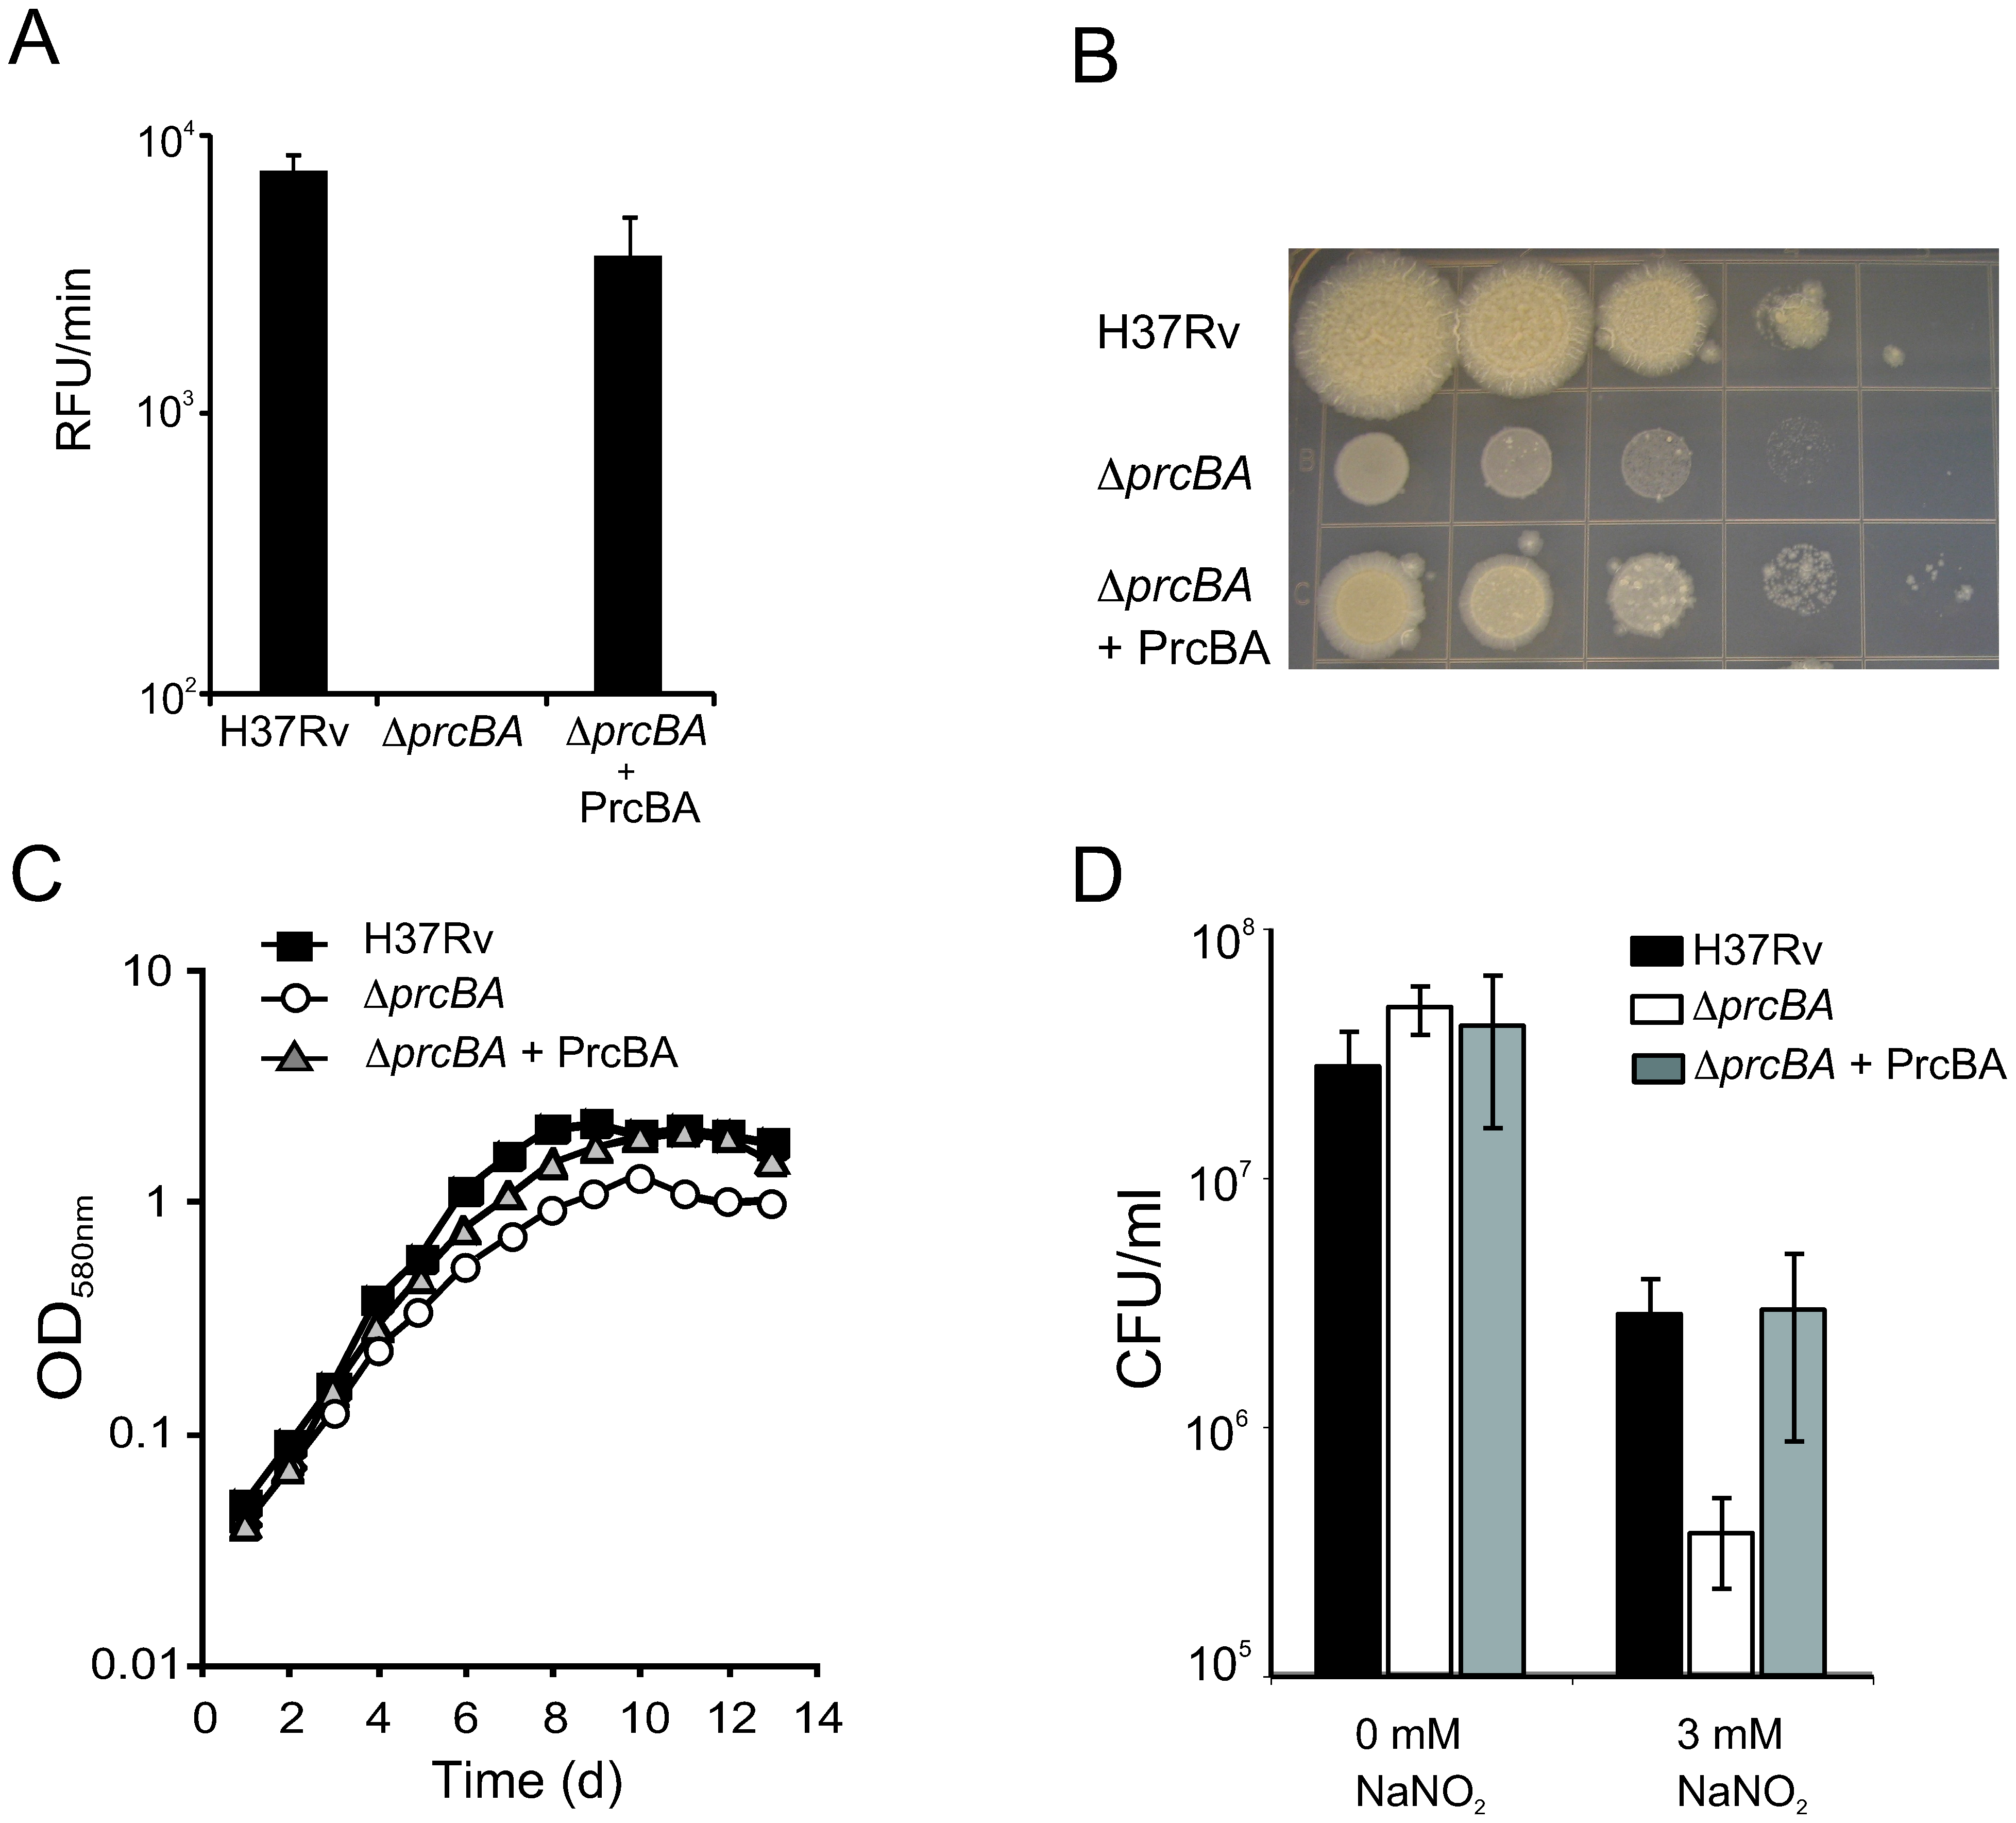 The proteasome is required for optimal growth <i>in vitro</i> and for resistance to RNI.